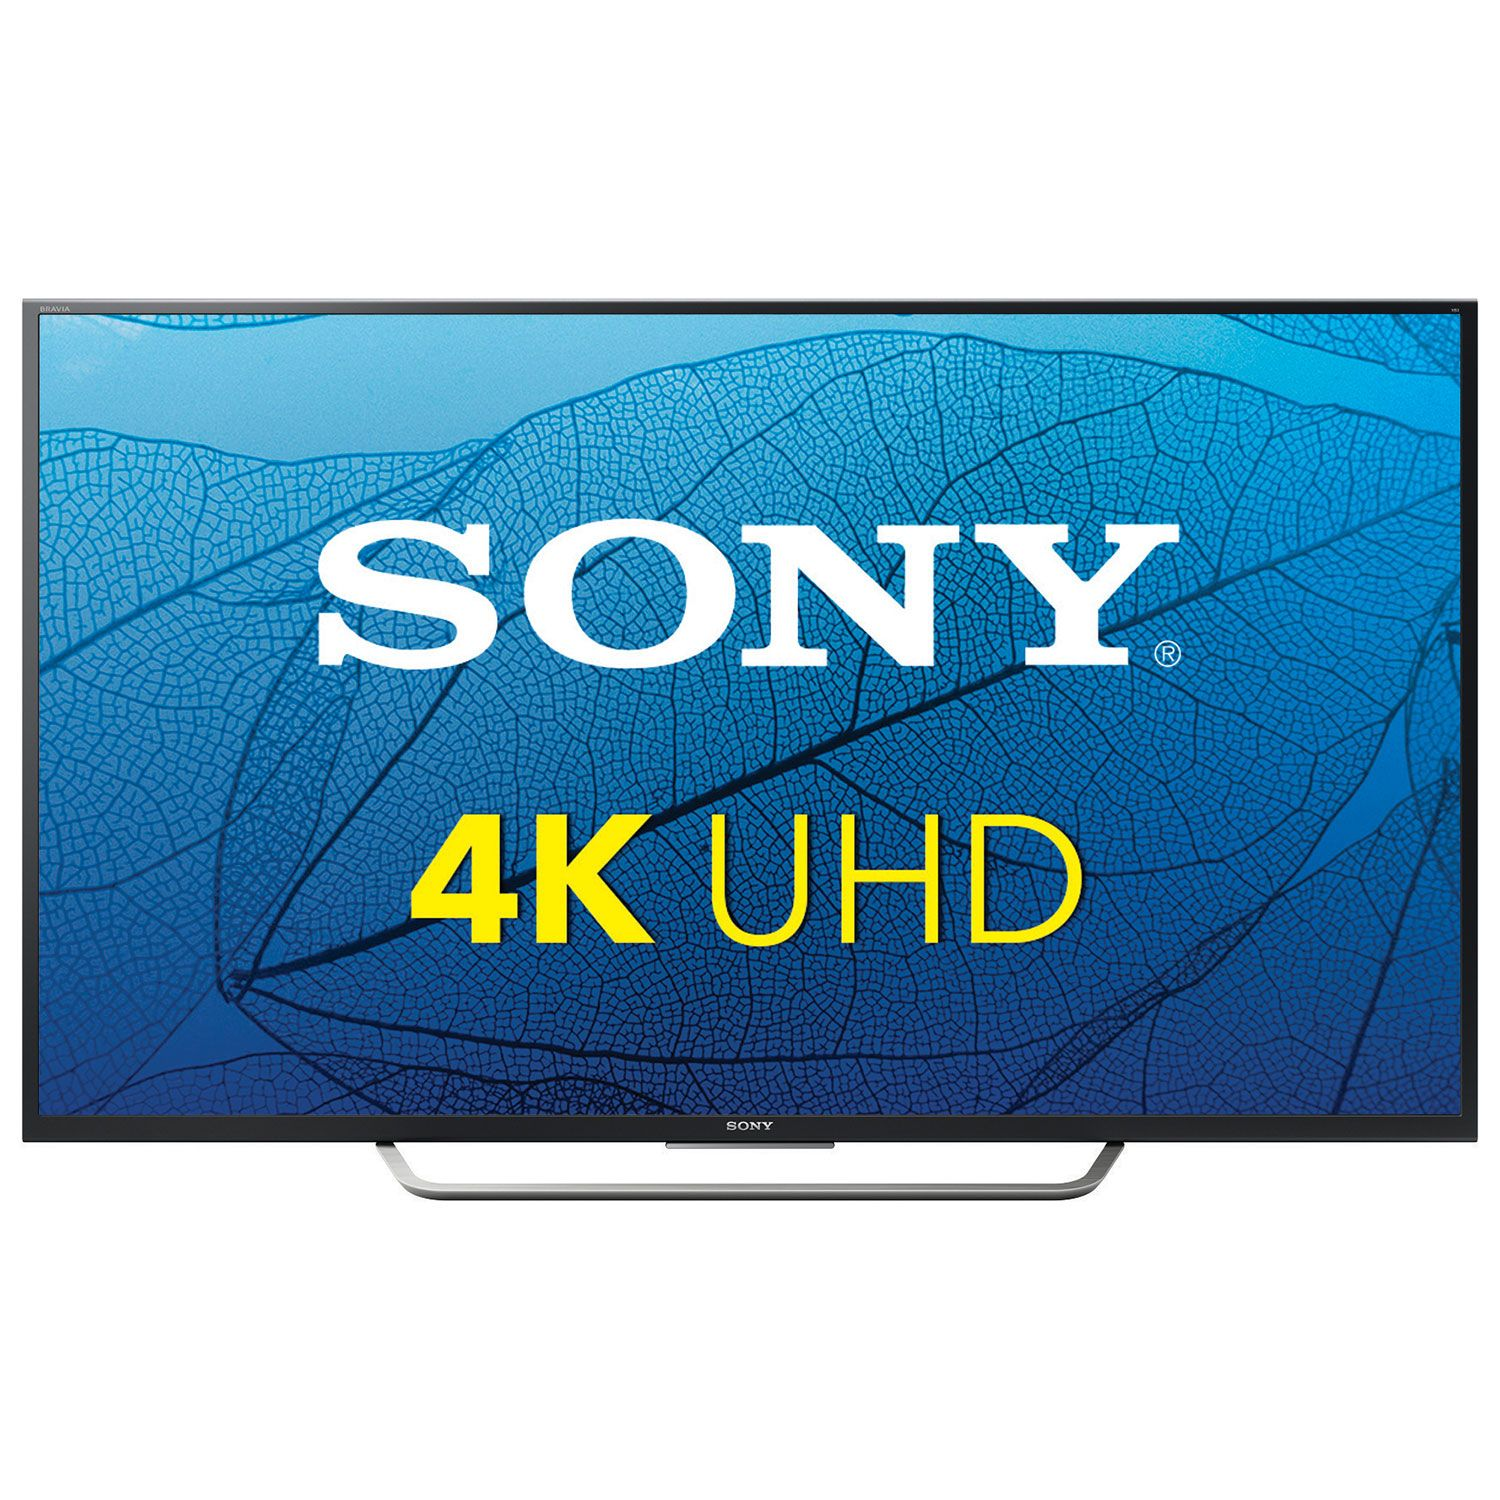 Sony Xbr X700d 55 4k Uhd Led Hdr Android Smart Tv Xbr55x700d